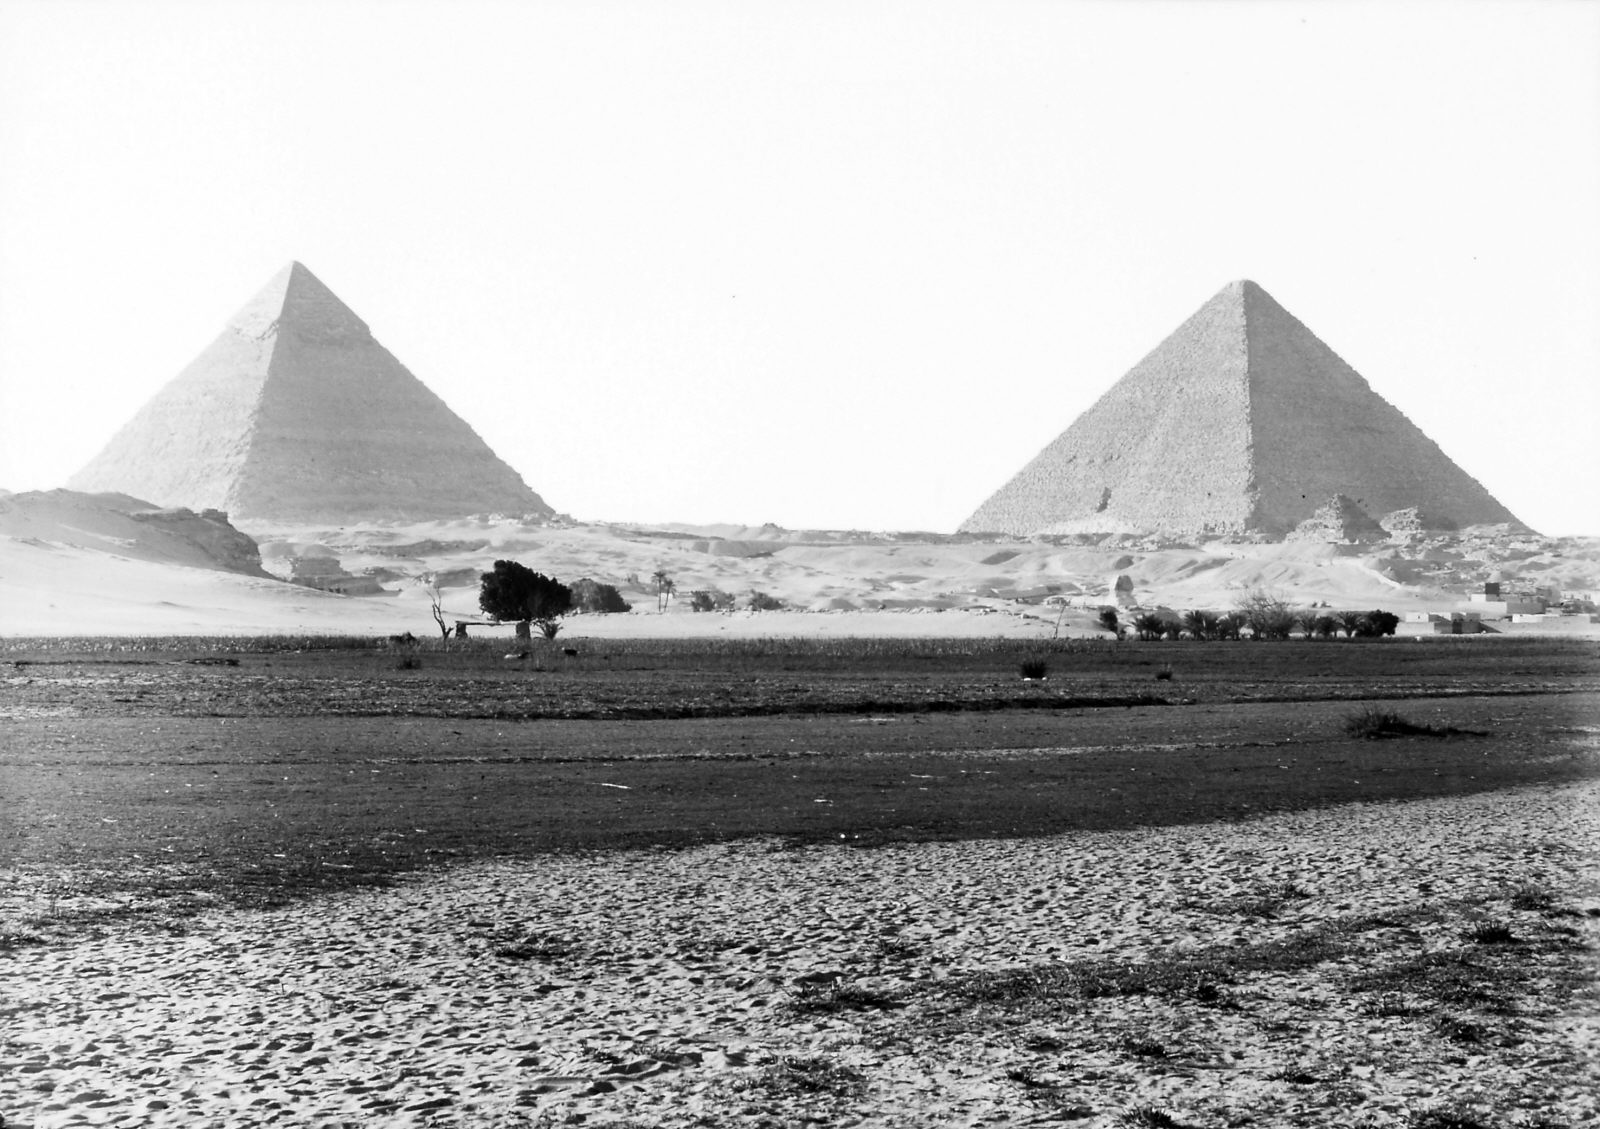 People & places: Site: Giza